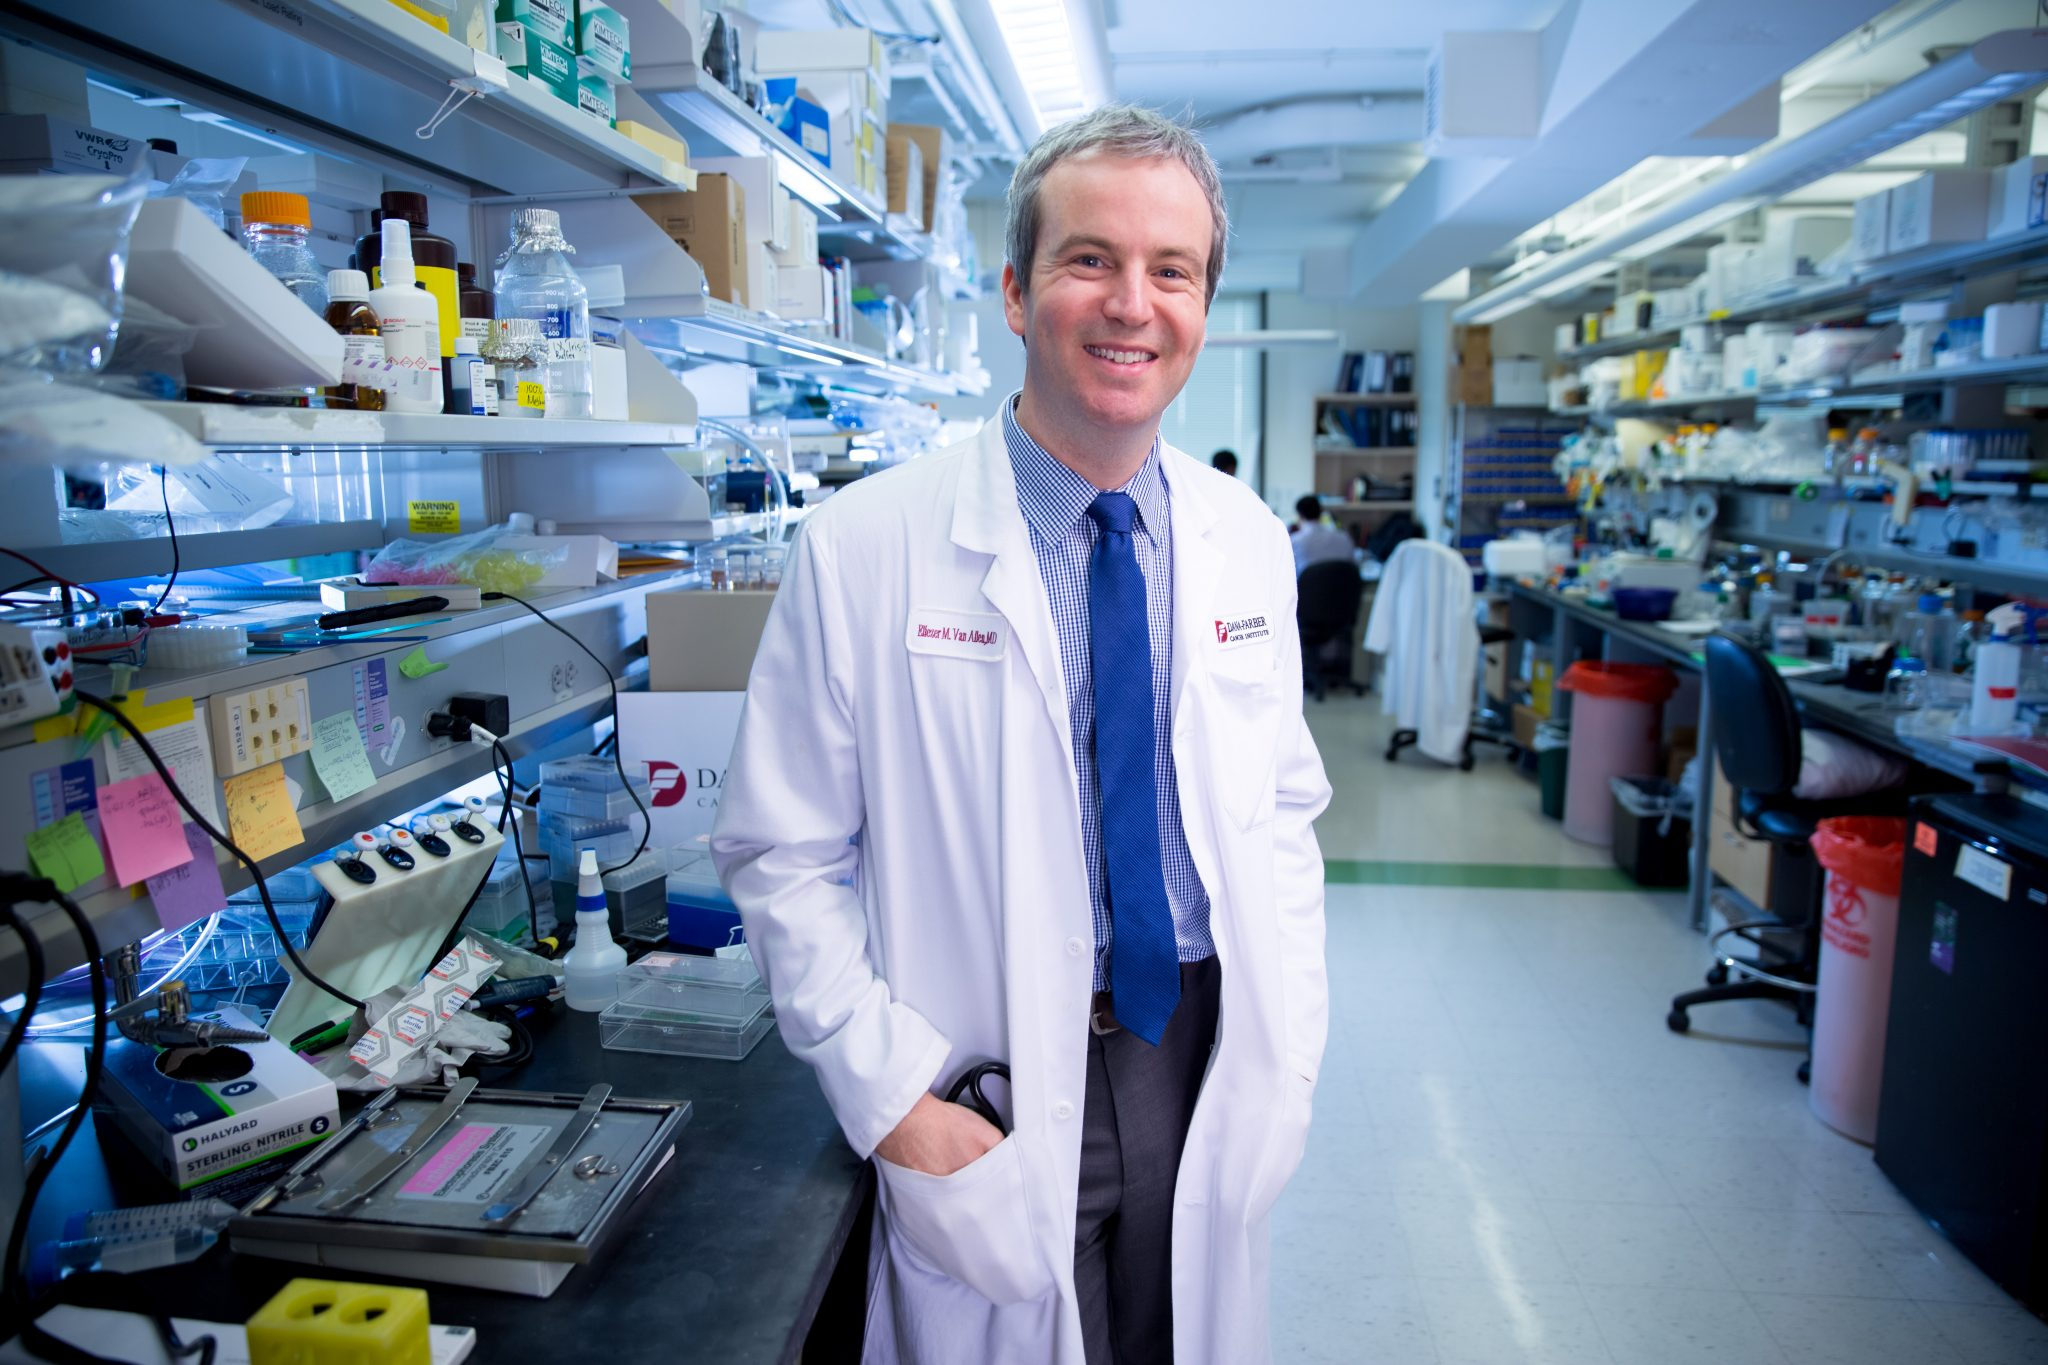 Eliezer Van Allen, MD, a physician-scientist in Dana-Farber's Lank Center for Genitourinary Oncology, is a 2016 SU2C Phil Sharp Award recipient.